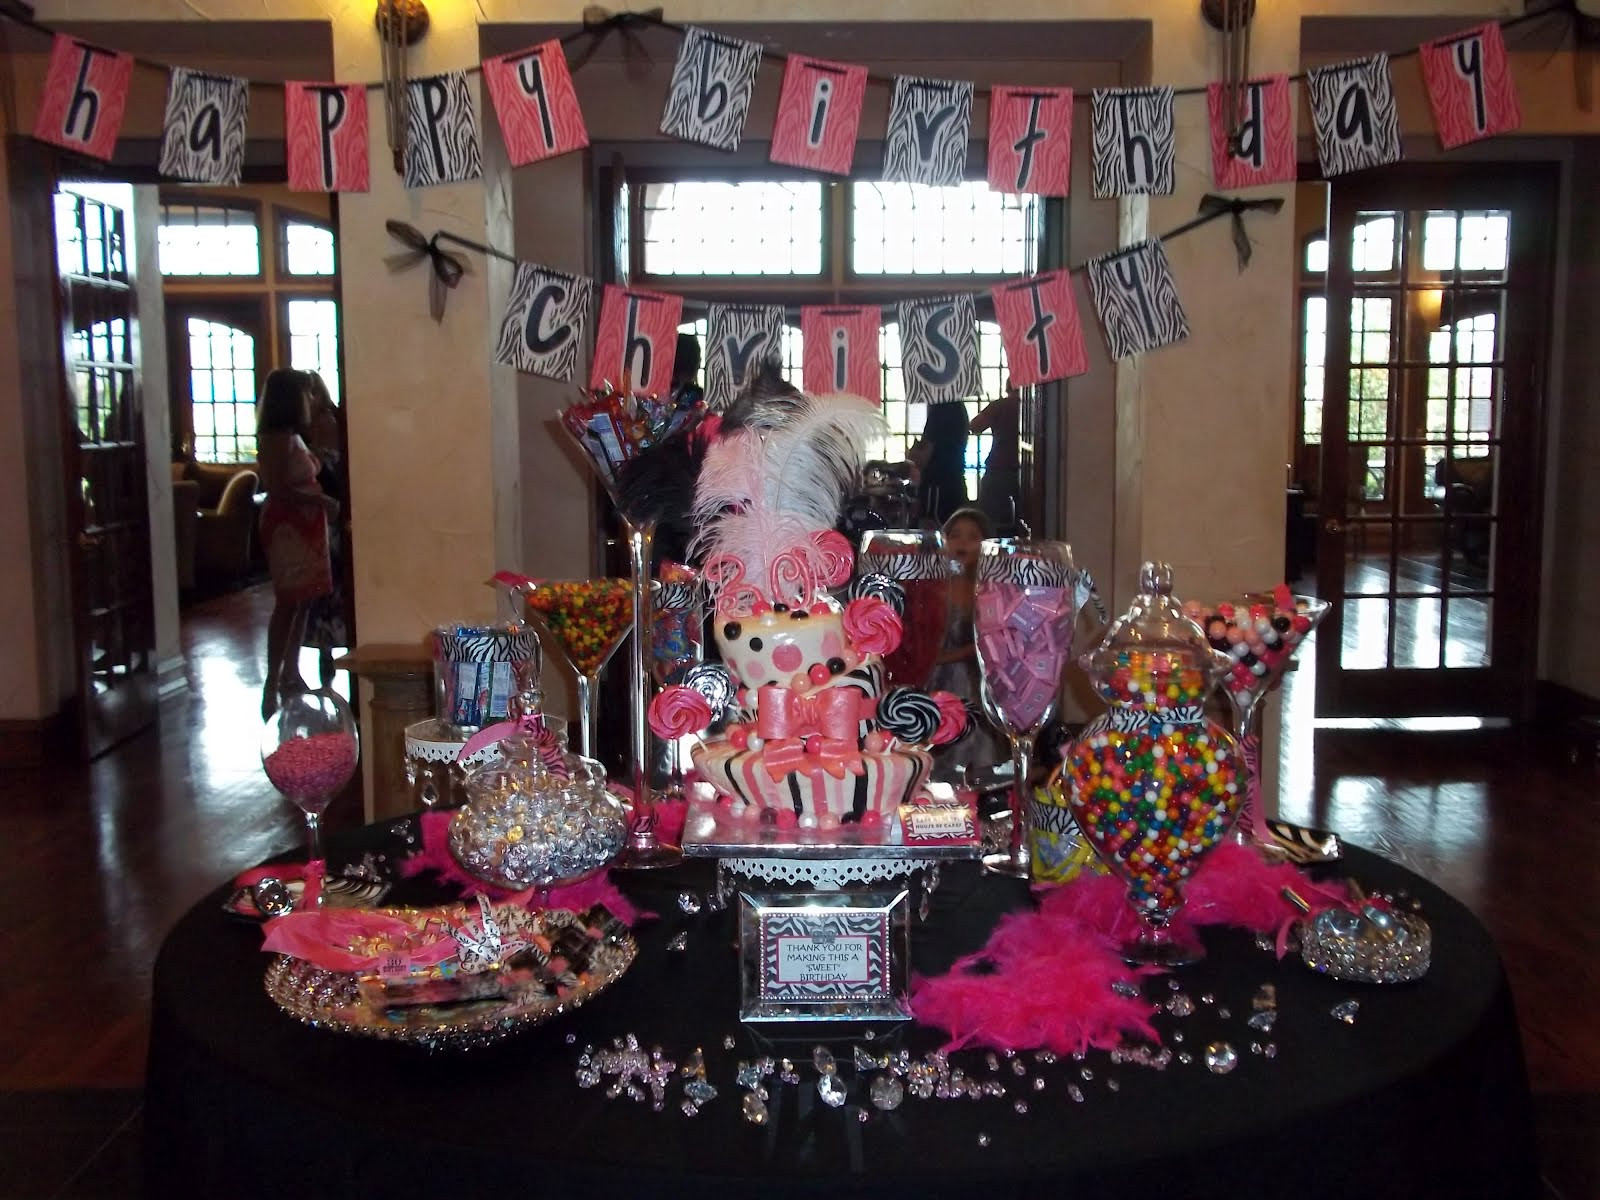 Best ideas about 30th Birthday Party Decor . Save or Pin Icing on the cake 30th Birthday Party Cake Now.